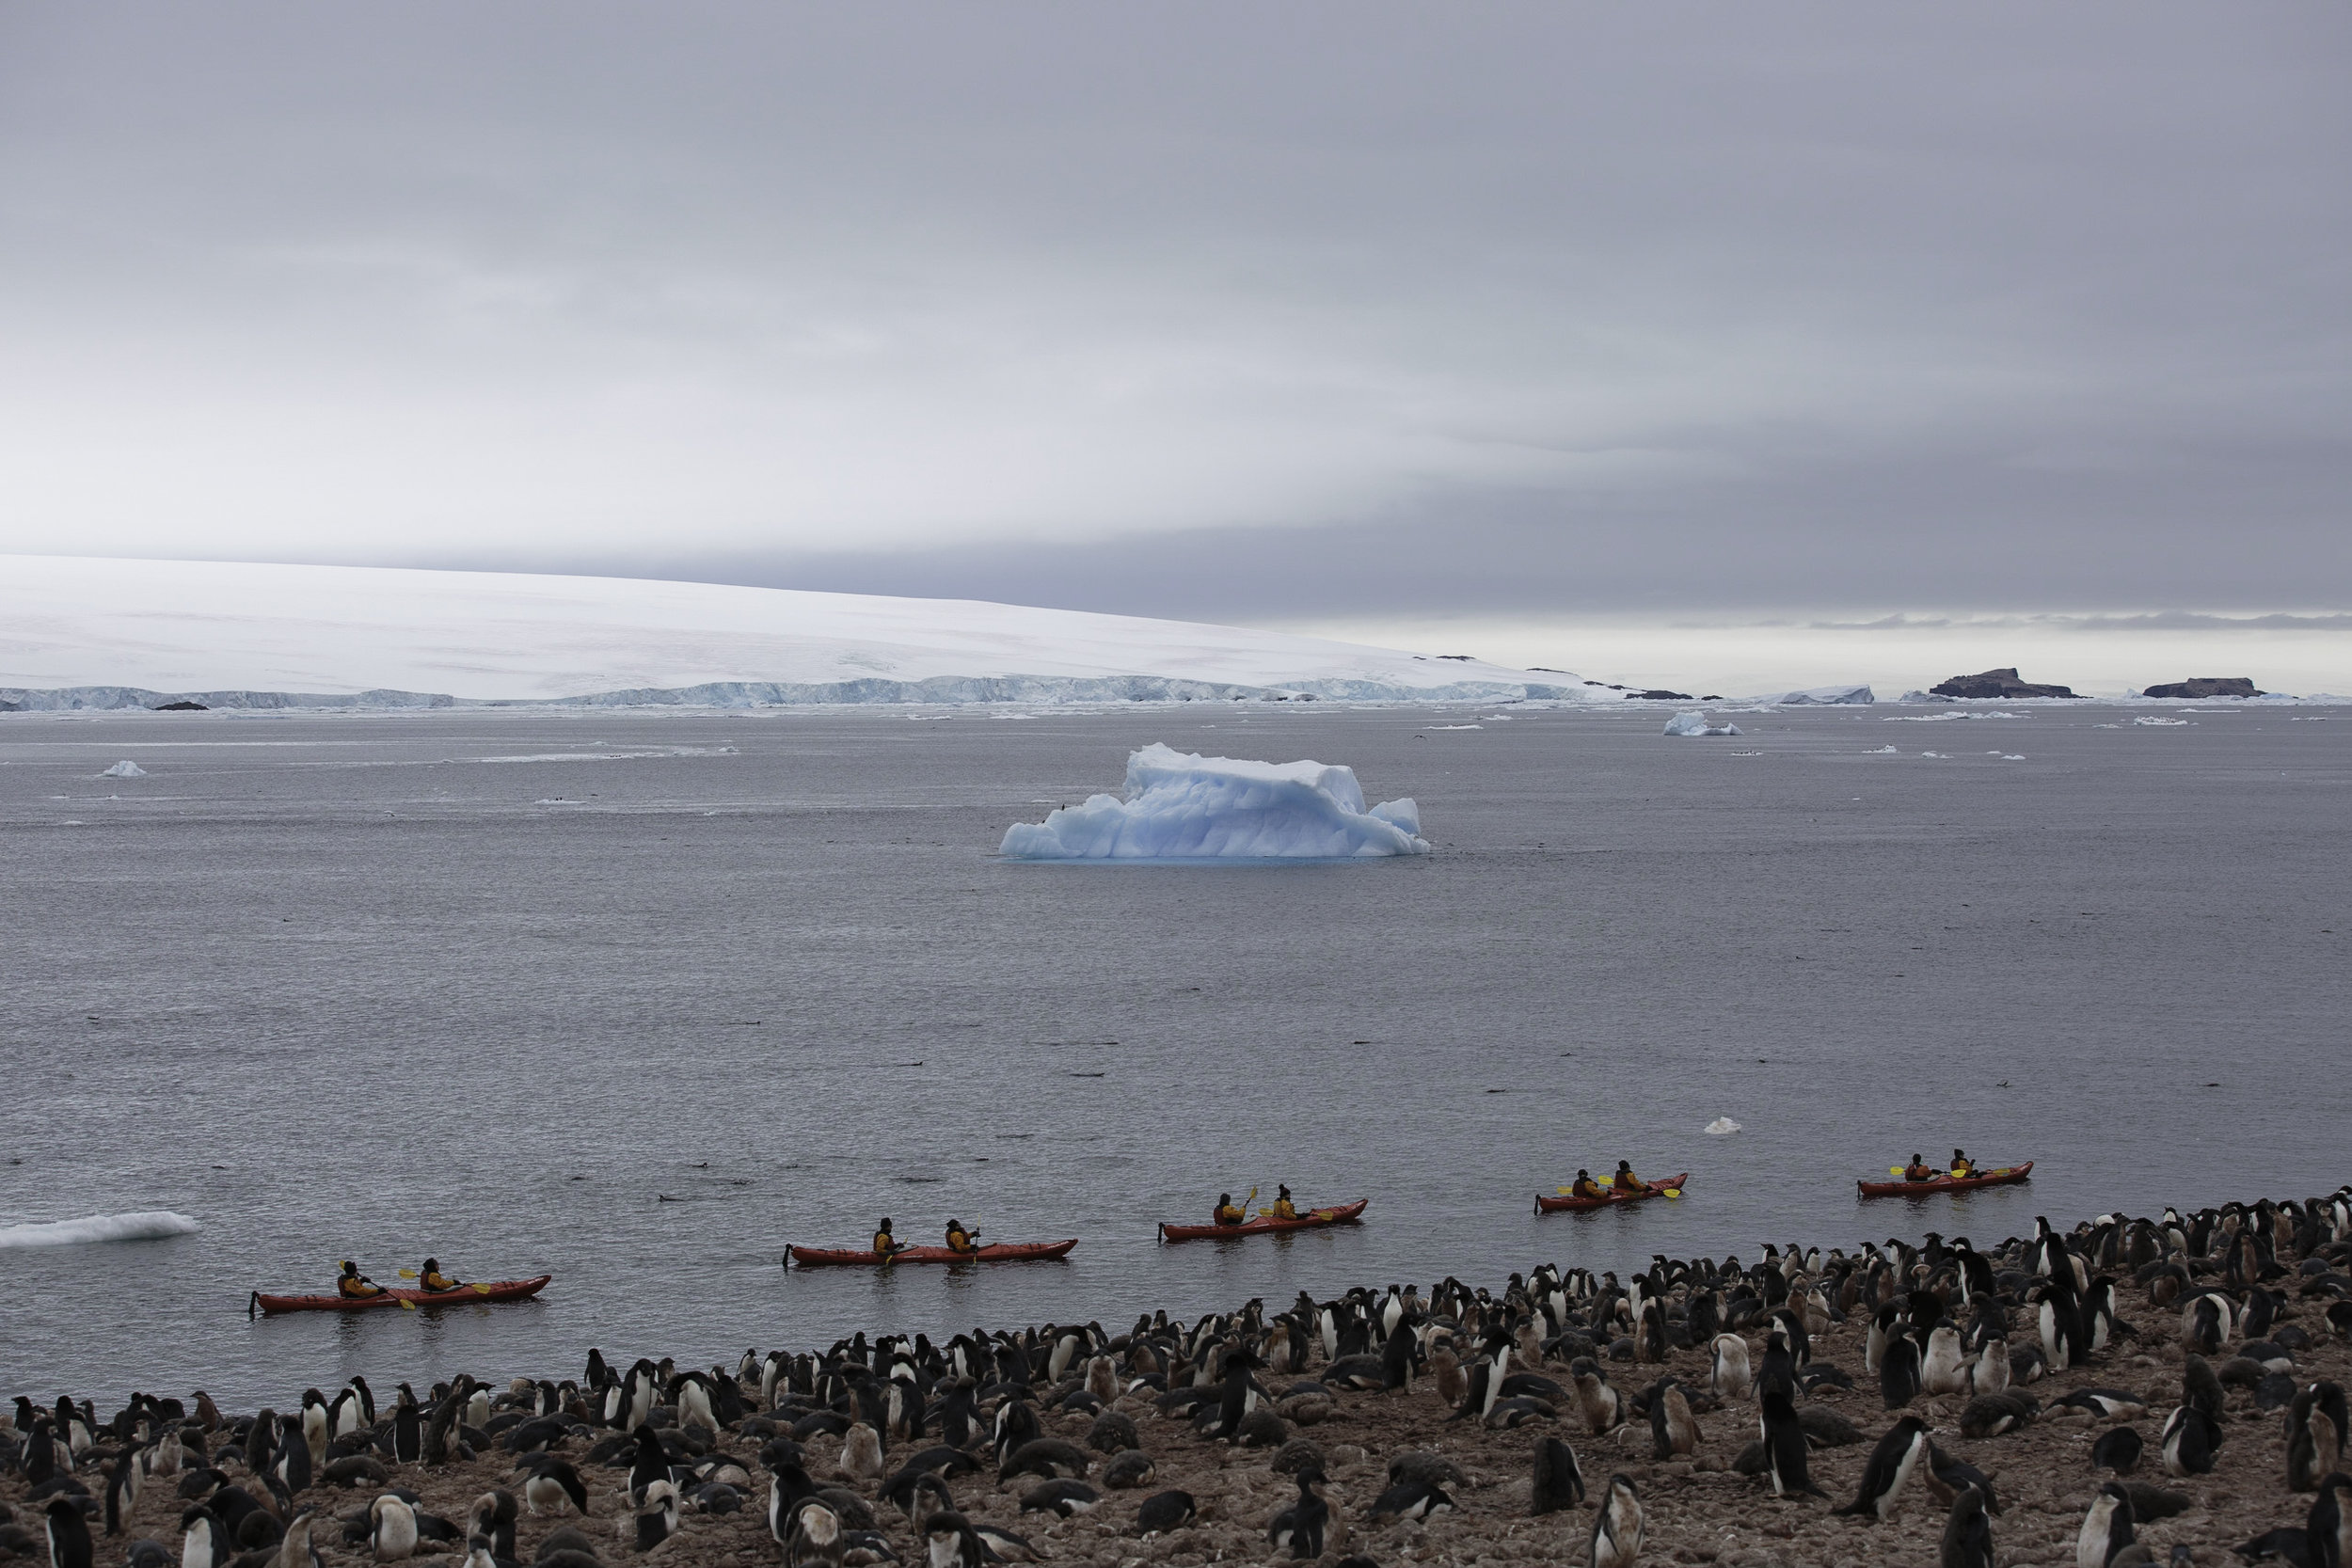 A group of kayakers from the kayak program aboard take in the colony of Adelie Penguins at Paulet Island.